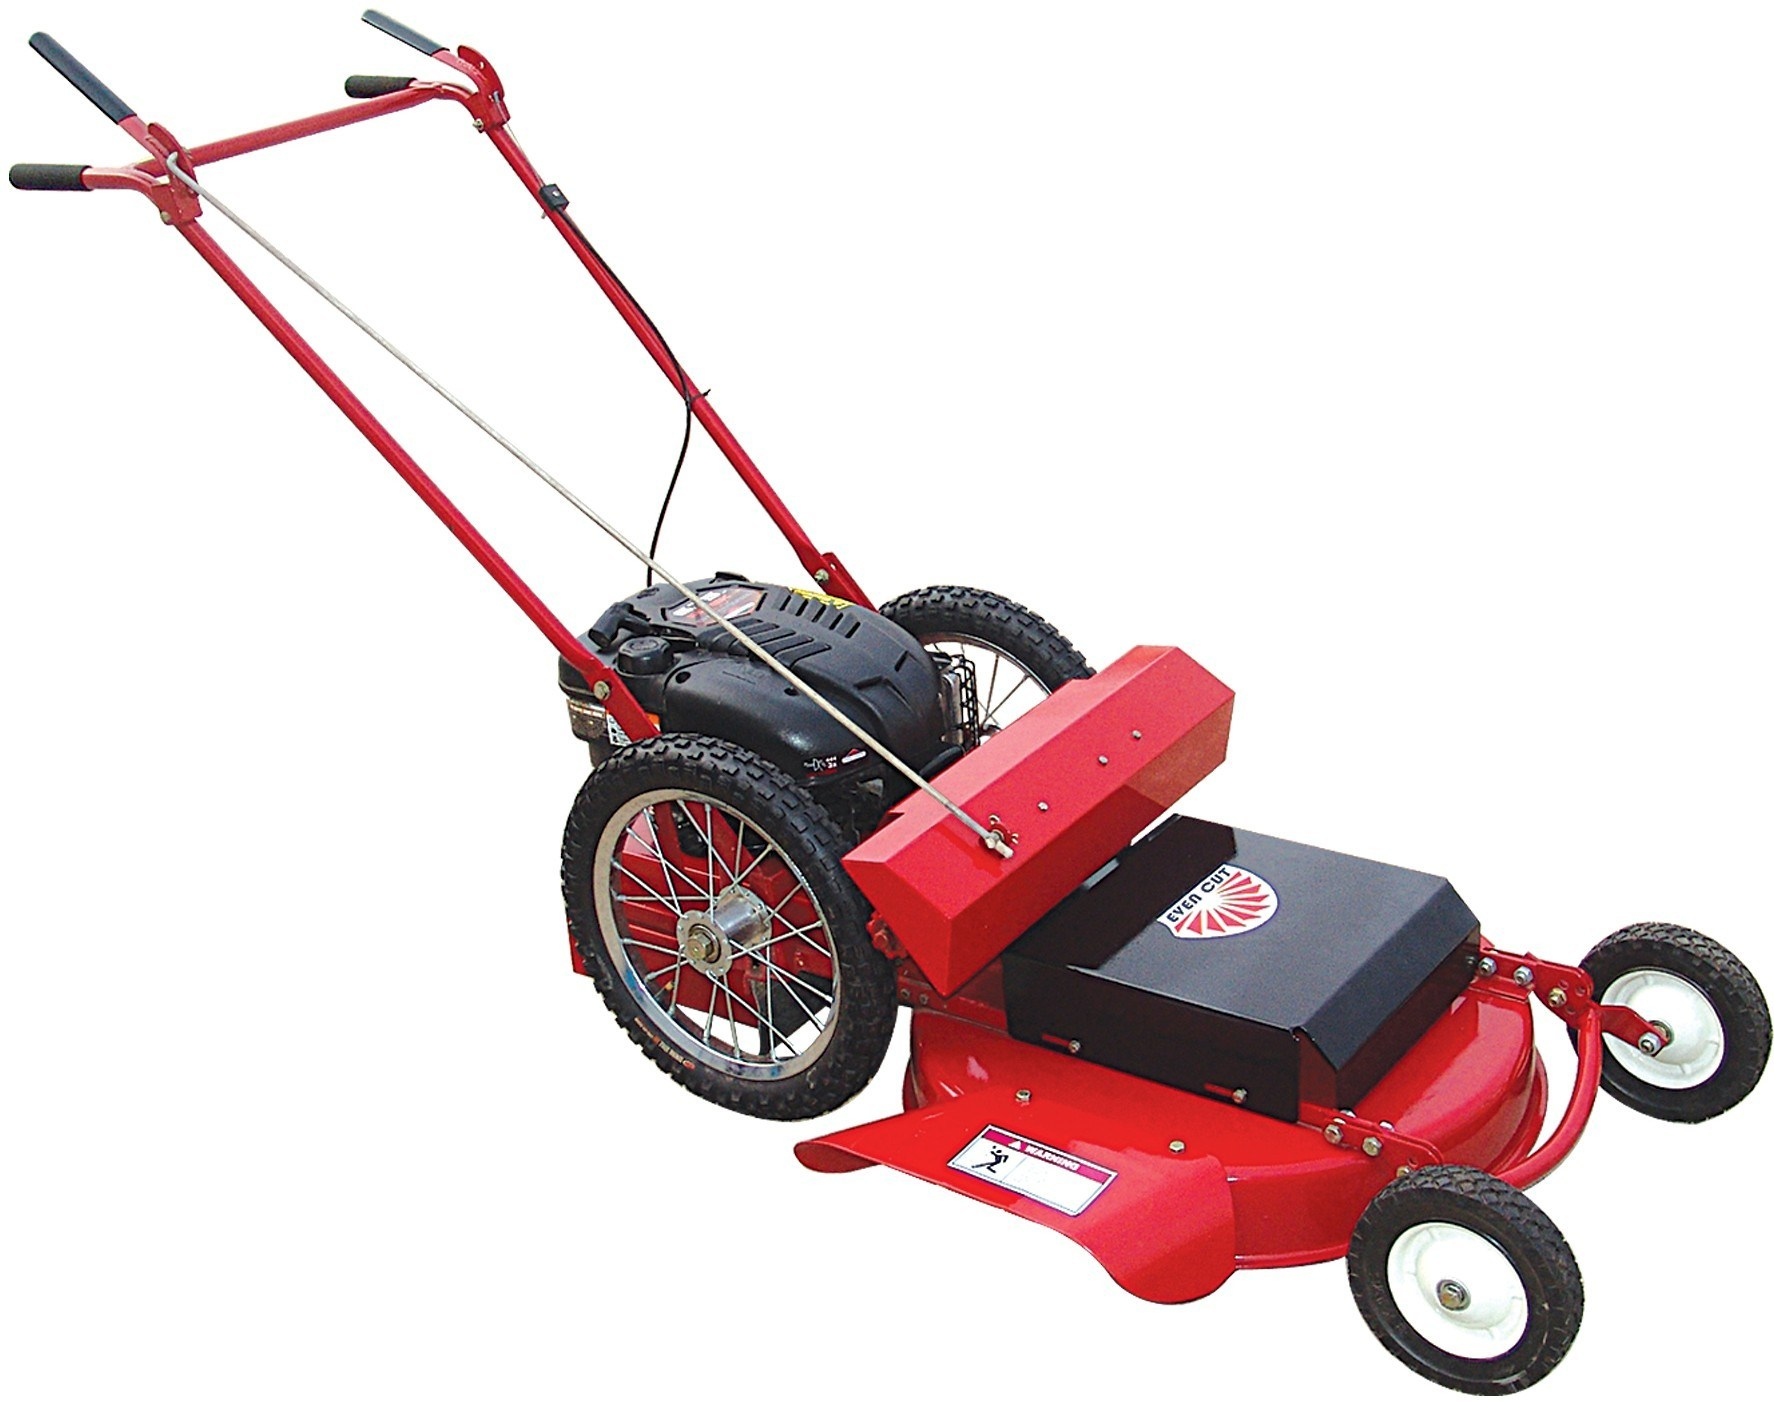 Lawnmower gasoline lawnmowers snowblowers for Best motor oil for lawn mowers